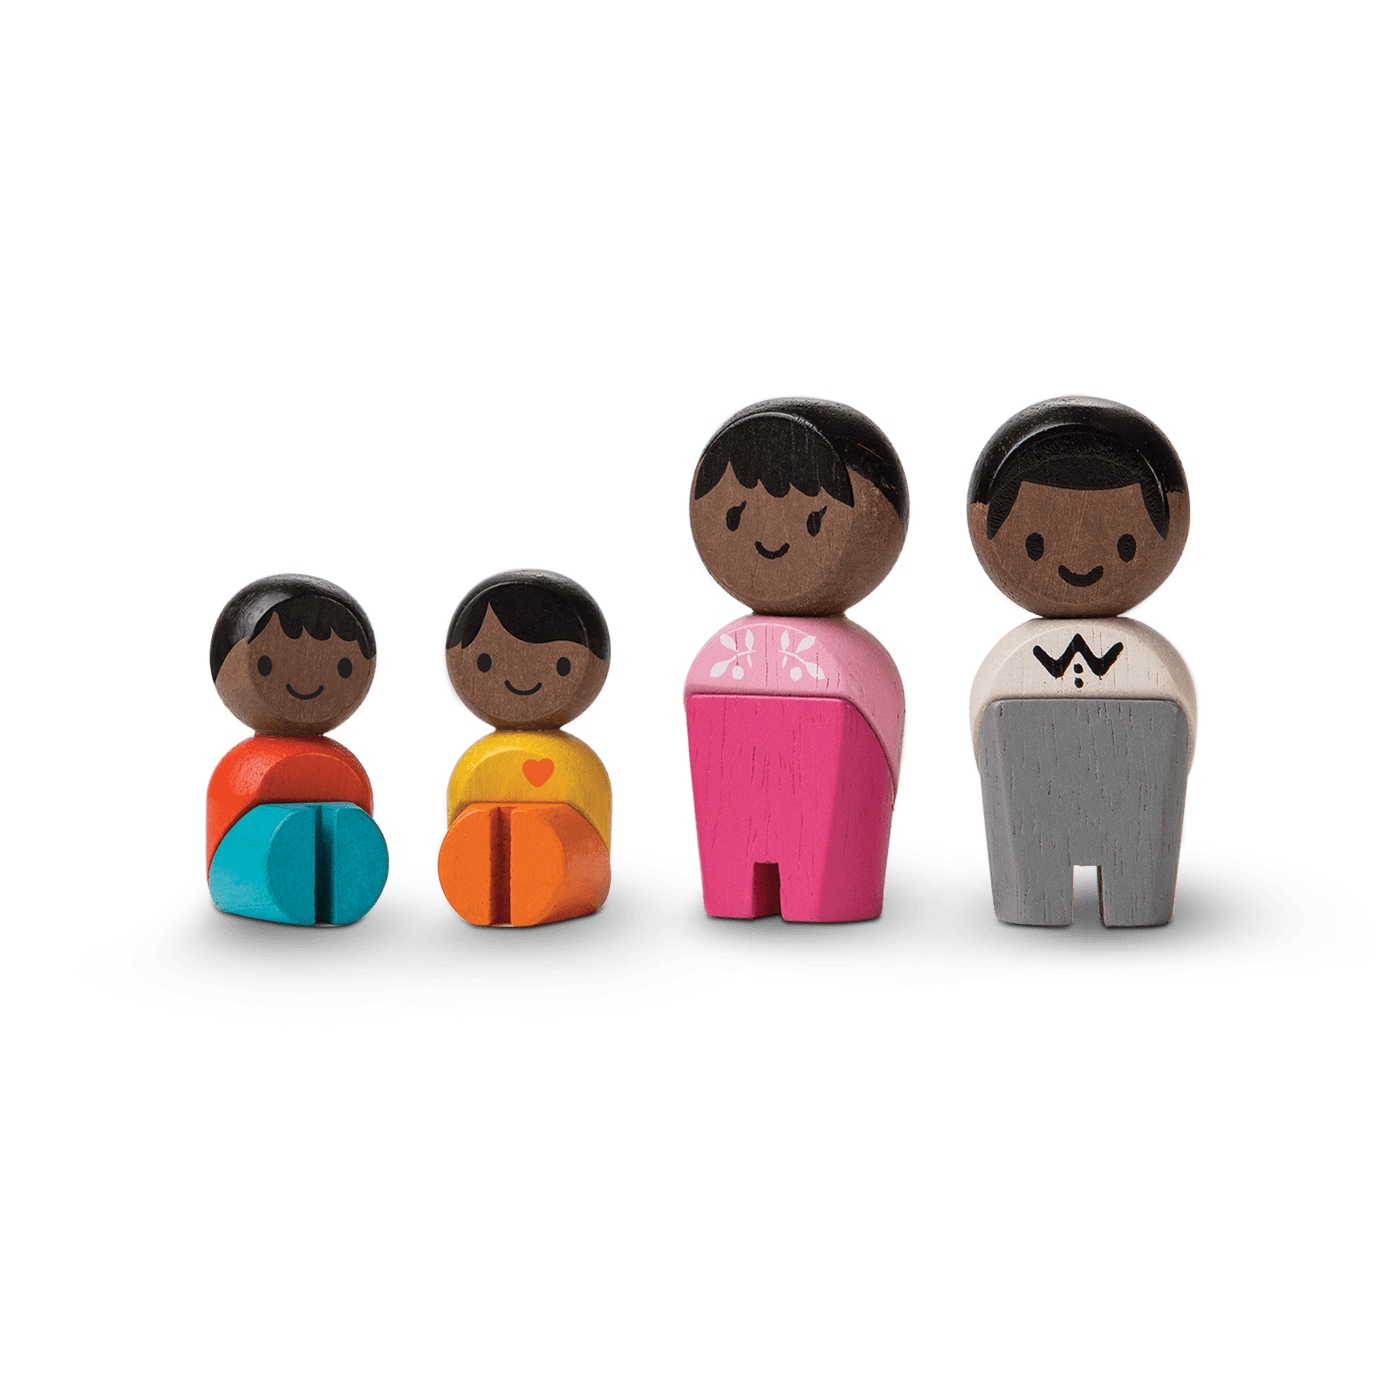 6266_PlanToys_FAMILY_I_(AFRO-AMERICAN)_Pretend_Play_Imagination_Social_Language_and_Communications_Fine_Motor_3yrs_Wooden_toys_Education_toys_Safety_Toys_Non-toxic_0.png